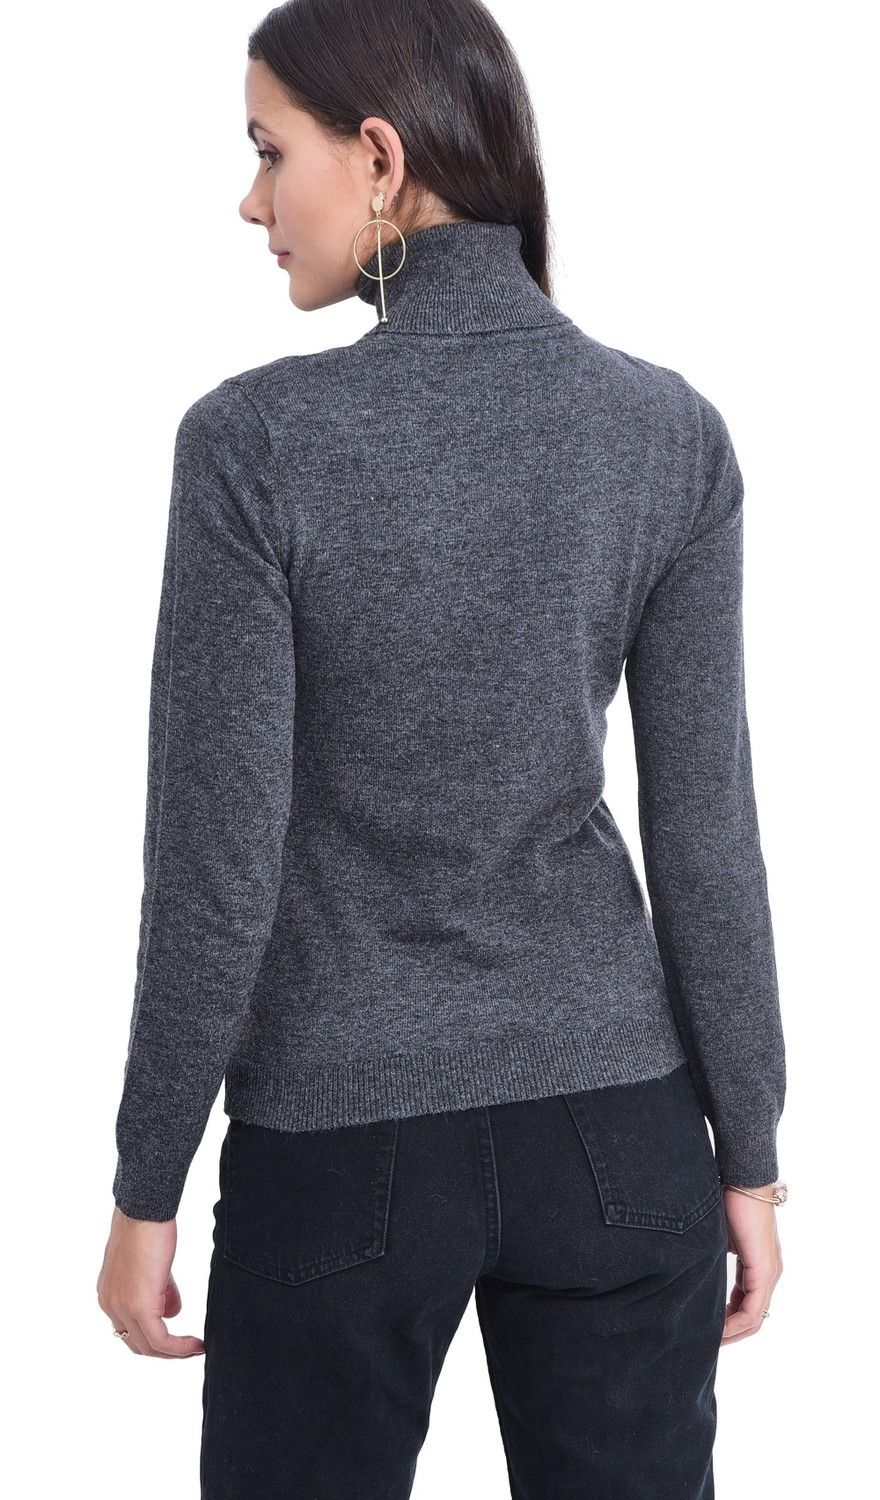 Assuili Turtleneck Sweater in Grey